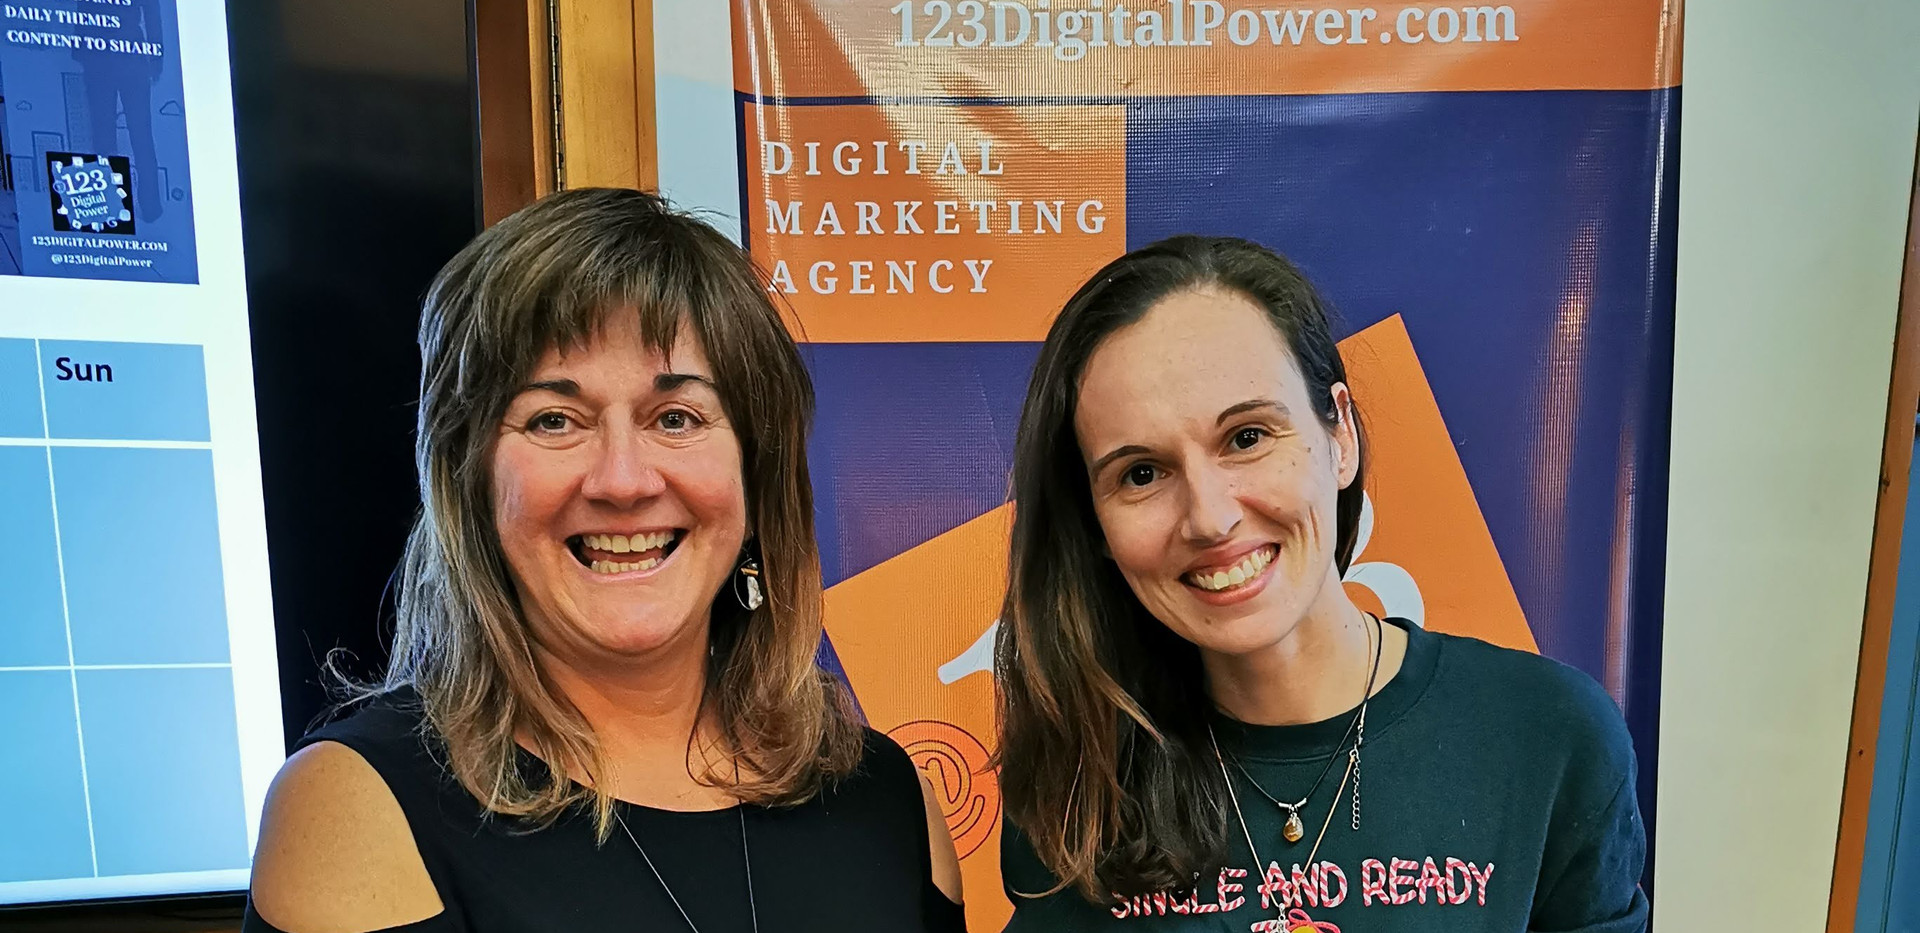 Digital Marketing Certification by Sofie Andreou